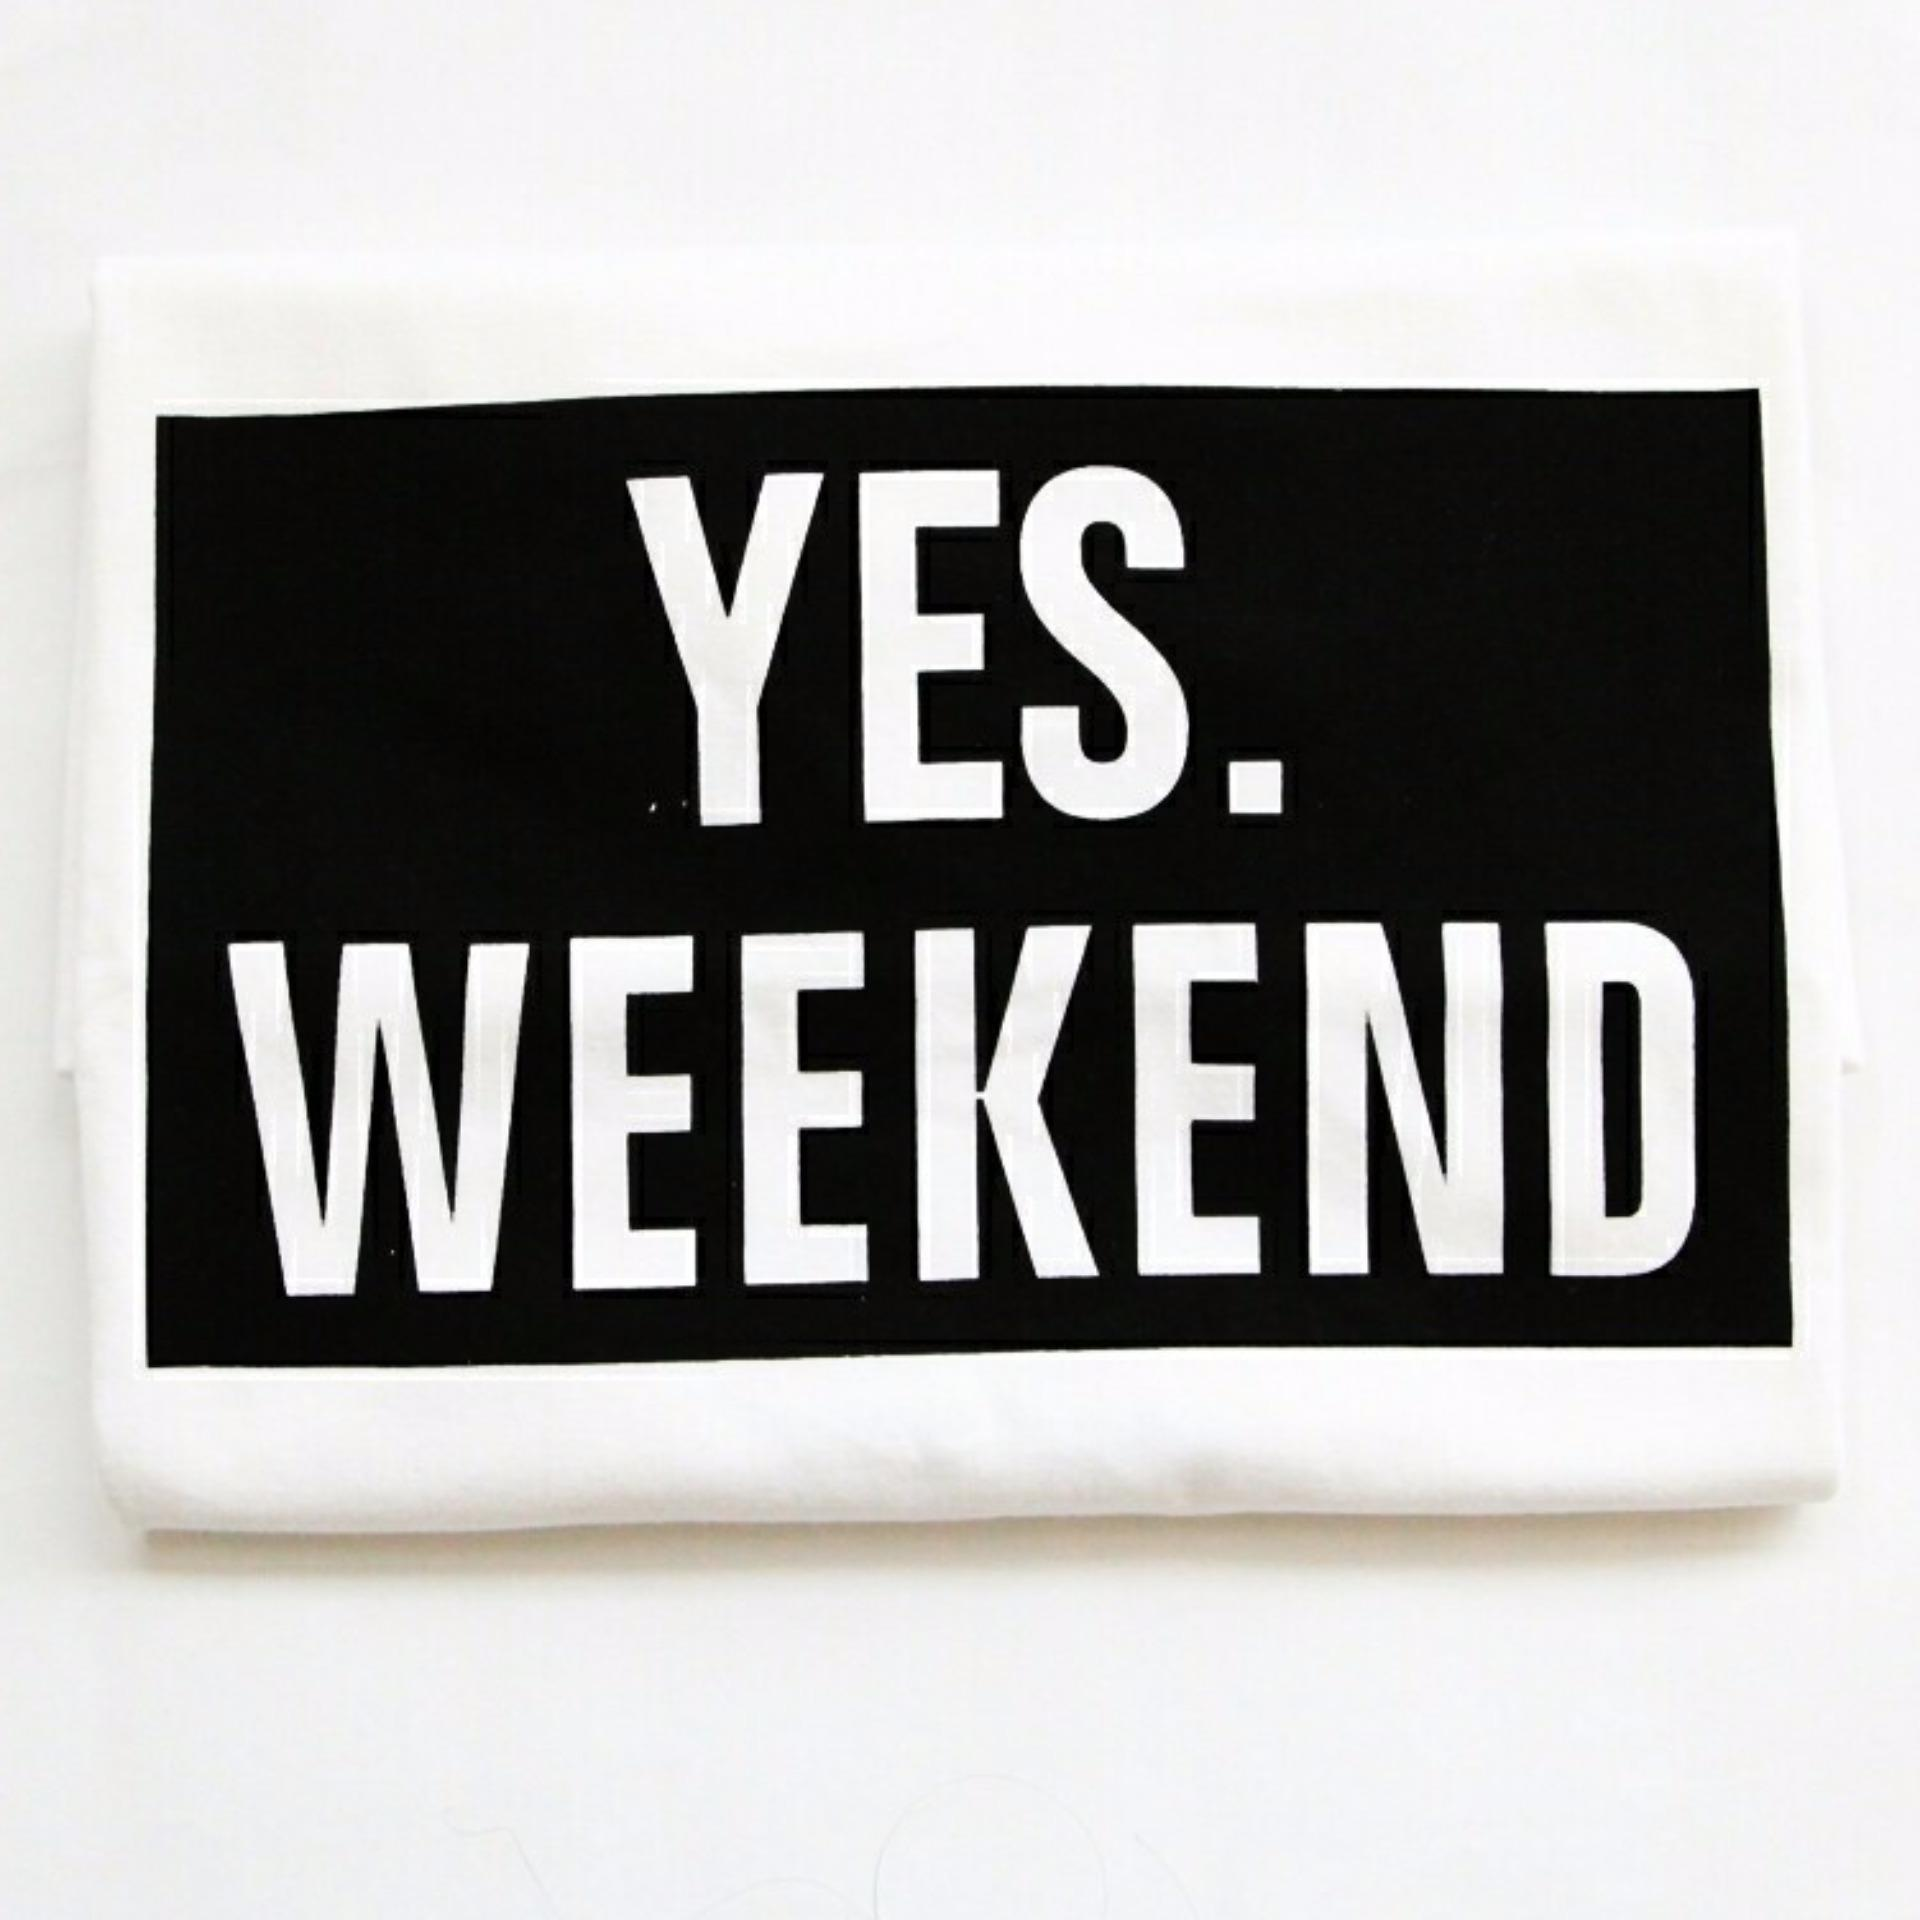 JCLOTHES Kaos Cewe / Tumblr Tee / Kaos Wanita Yes Weekend - Putih .